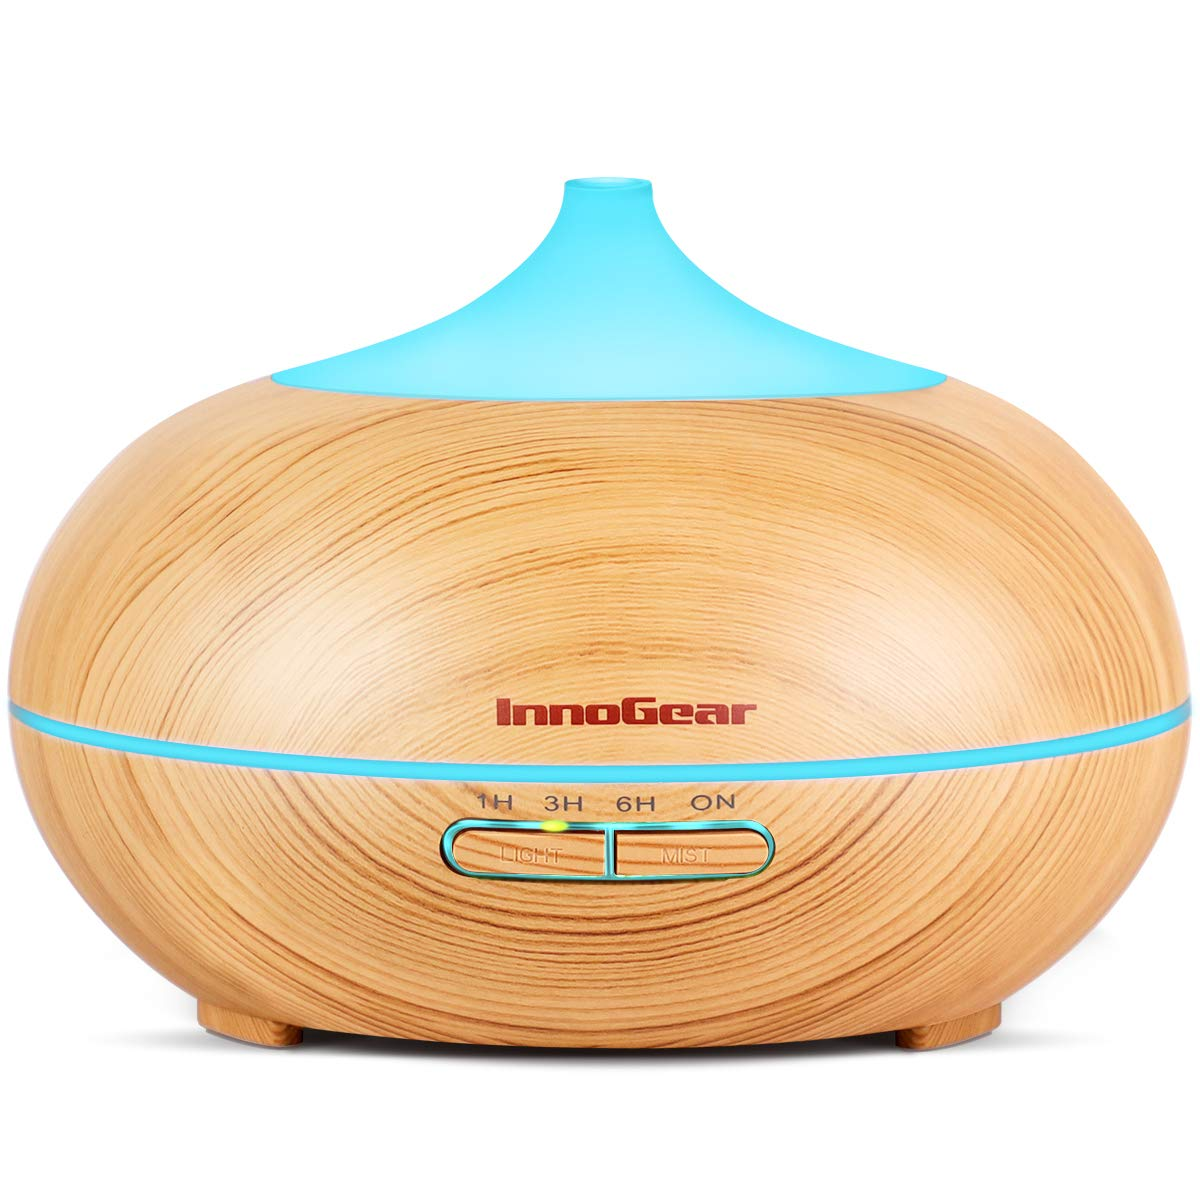 InnoGear 300ml Aromatherapy Essential Oil Diffuser Wood Grain Aroma Diffusers Cool Mist Humidifier with Timer Adjustable Mist 7 Color Changing Night Lights Waterless Auto Shut-off